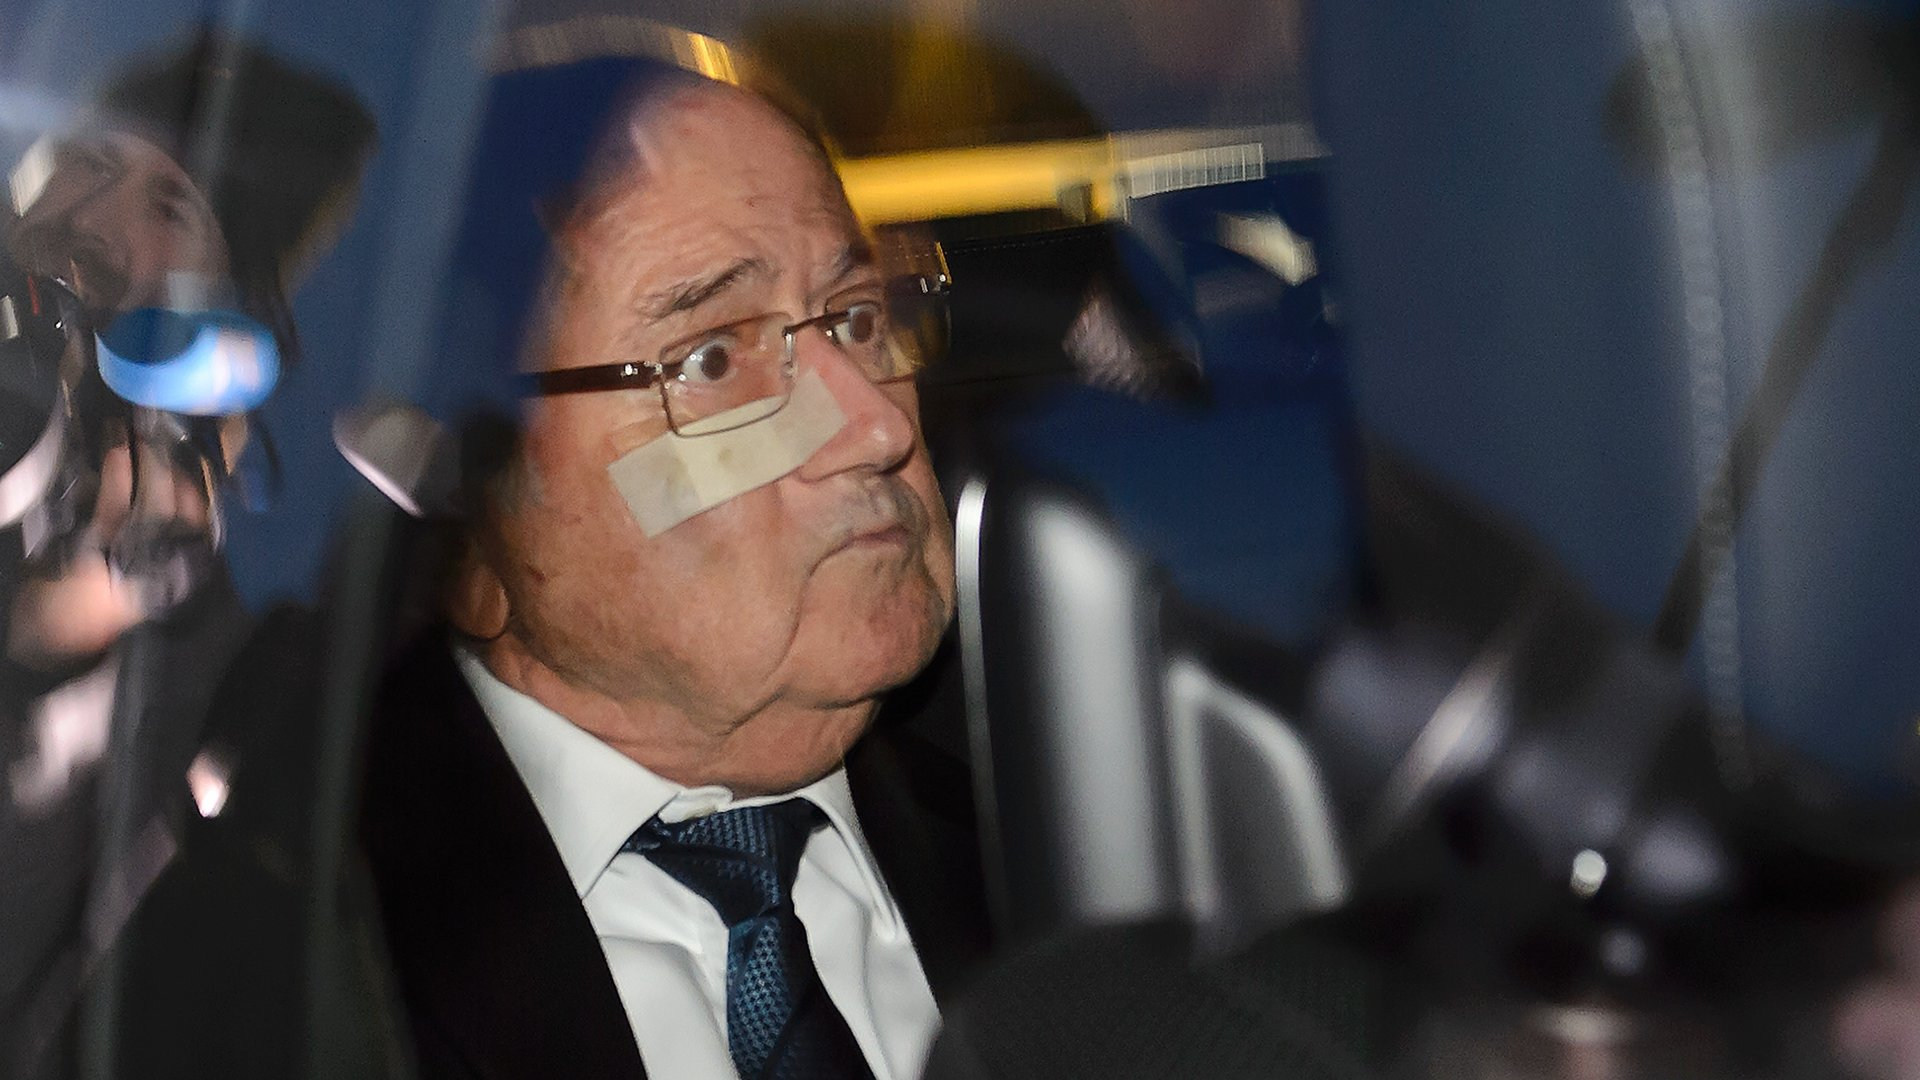 TOPSHOT - Suspended FIFA president Sepp Blatter leaves after a hearing at the FIFA headquarters on December 17, 2015 in Zurich. Suspended Blatter appeared before the world body's ethics judges to answer corruption allegations as Switzerland announced it has frozen tens of millions of dollars in accounts linked to football bribes. / AFP / FABRICE COFFRINI (Photo credit should read FABRICE COFFRINI/AFP/Getty Images)